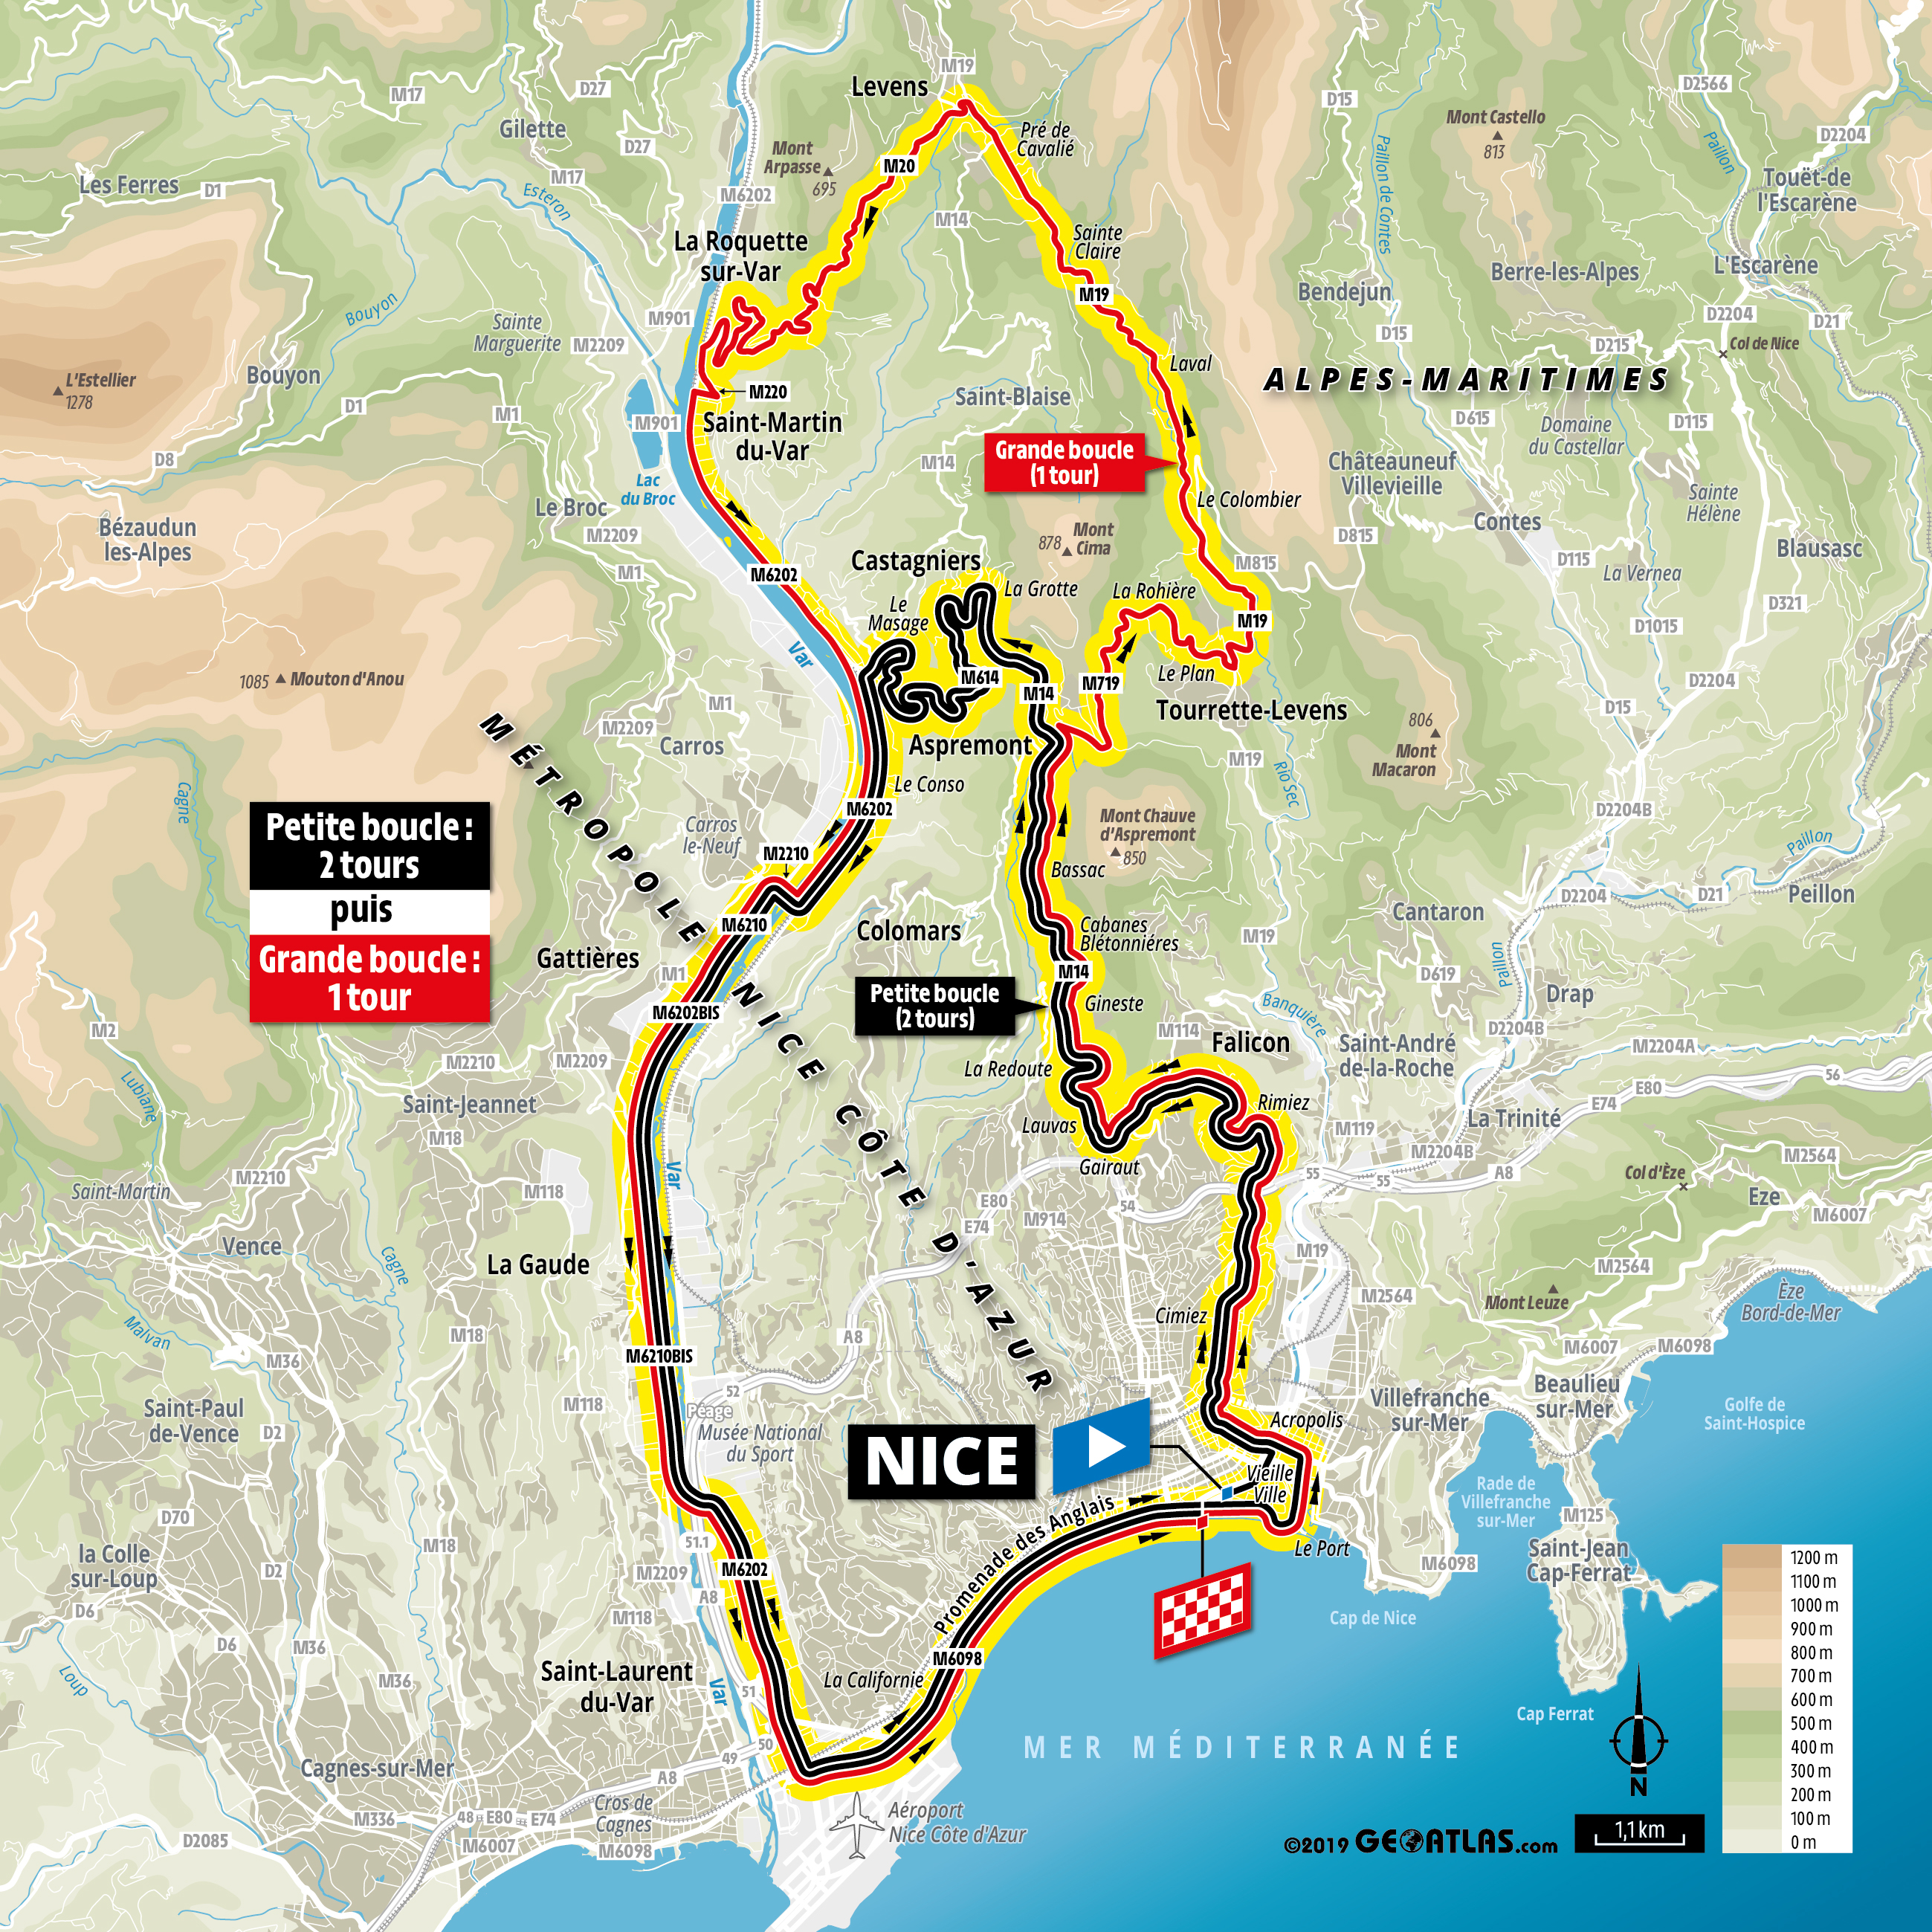 2020 Tour De France Tour de France 2020: Tough Grand Départ in Nice as stage one and